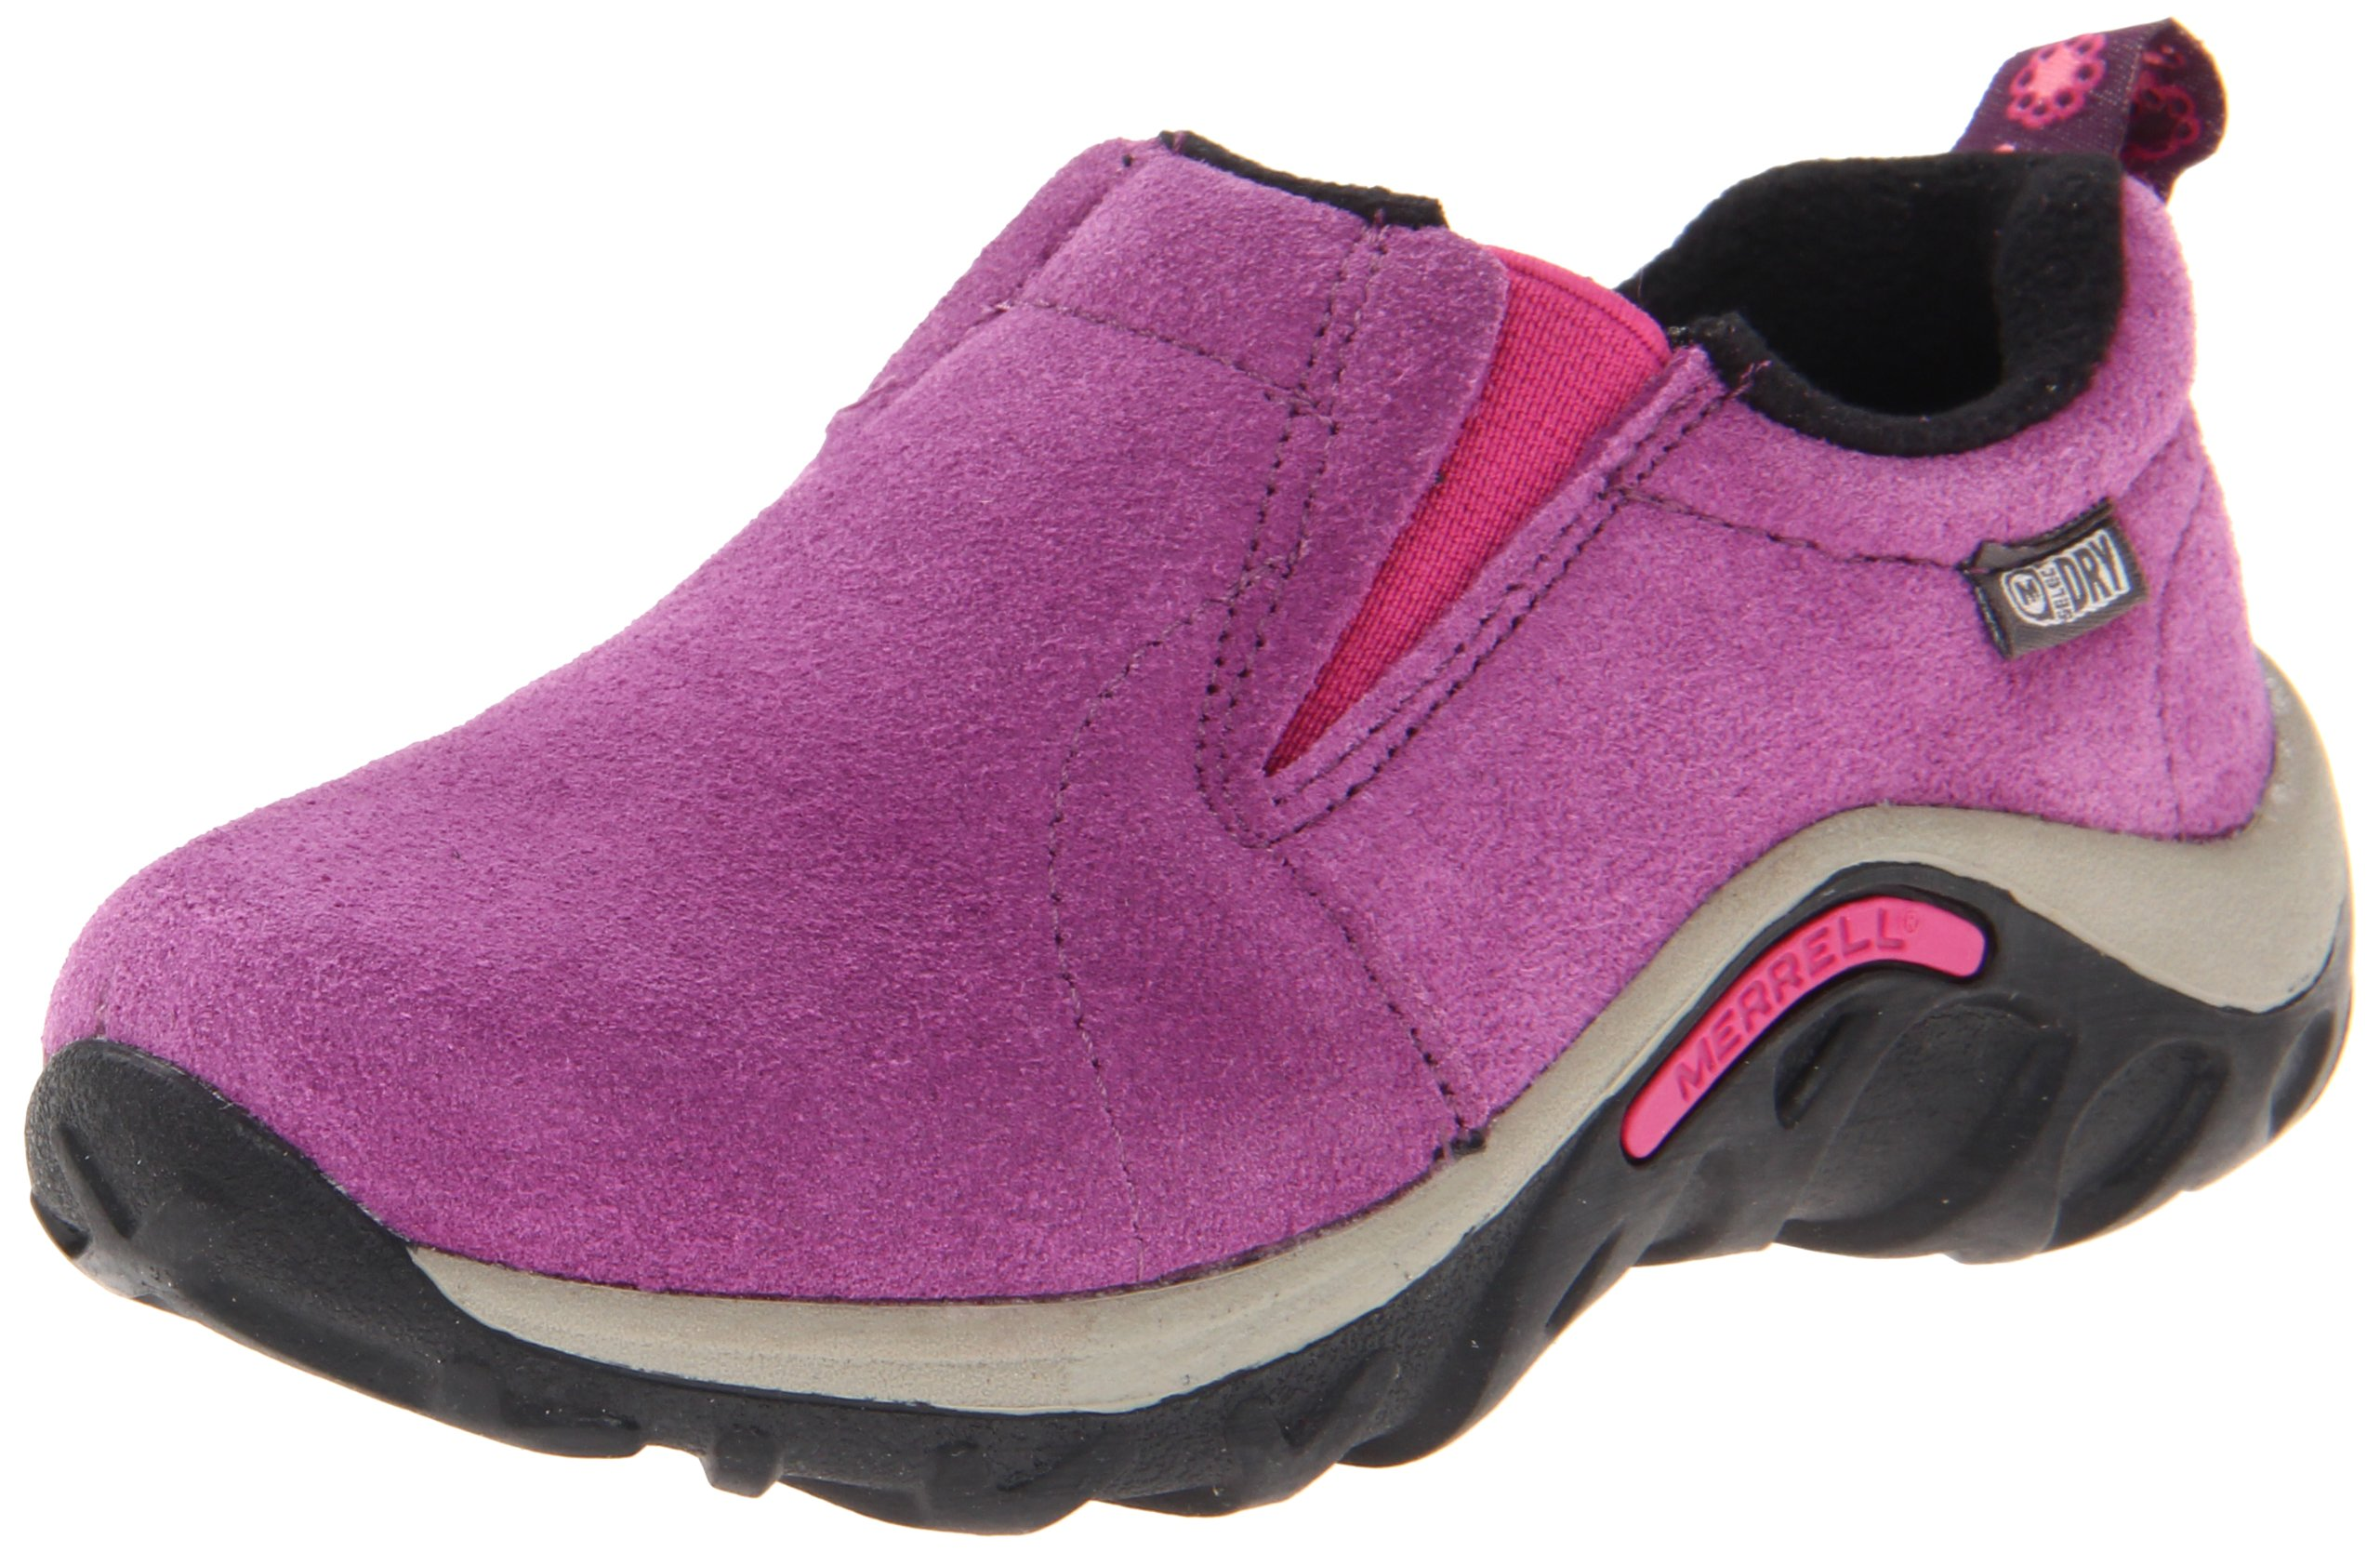 Merrell Jungle Moc Frosty Waterproof Slip-On Shoe (Toddler/Little Kid/Big Kid),Wineberry,5.5 M US Big Kid